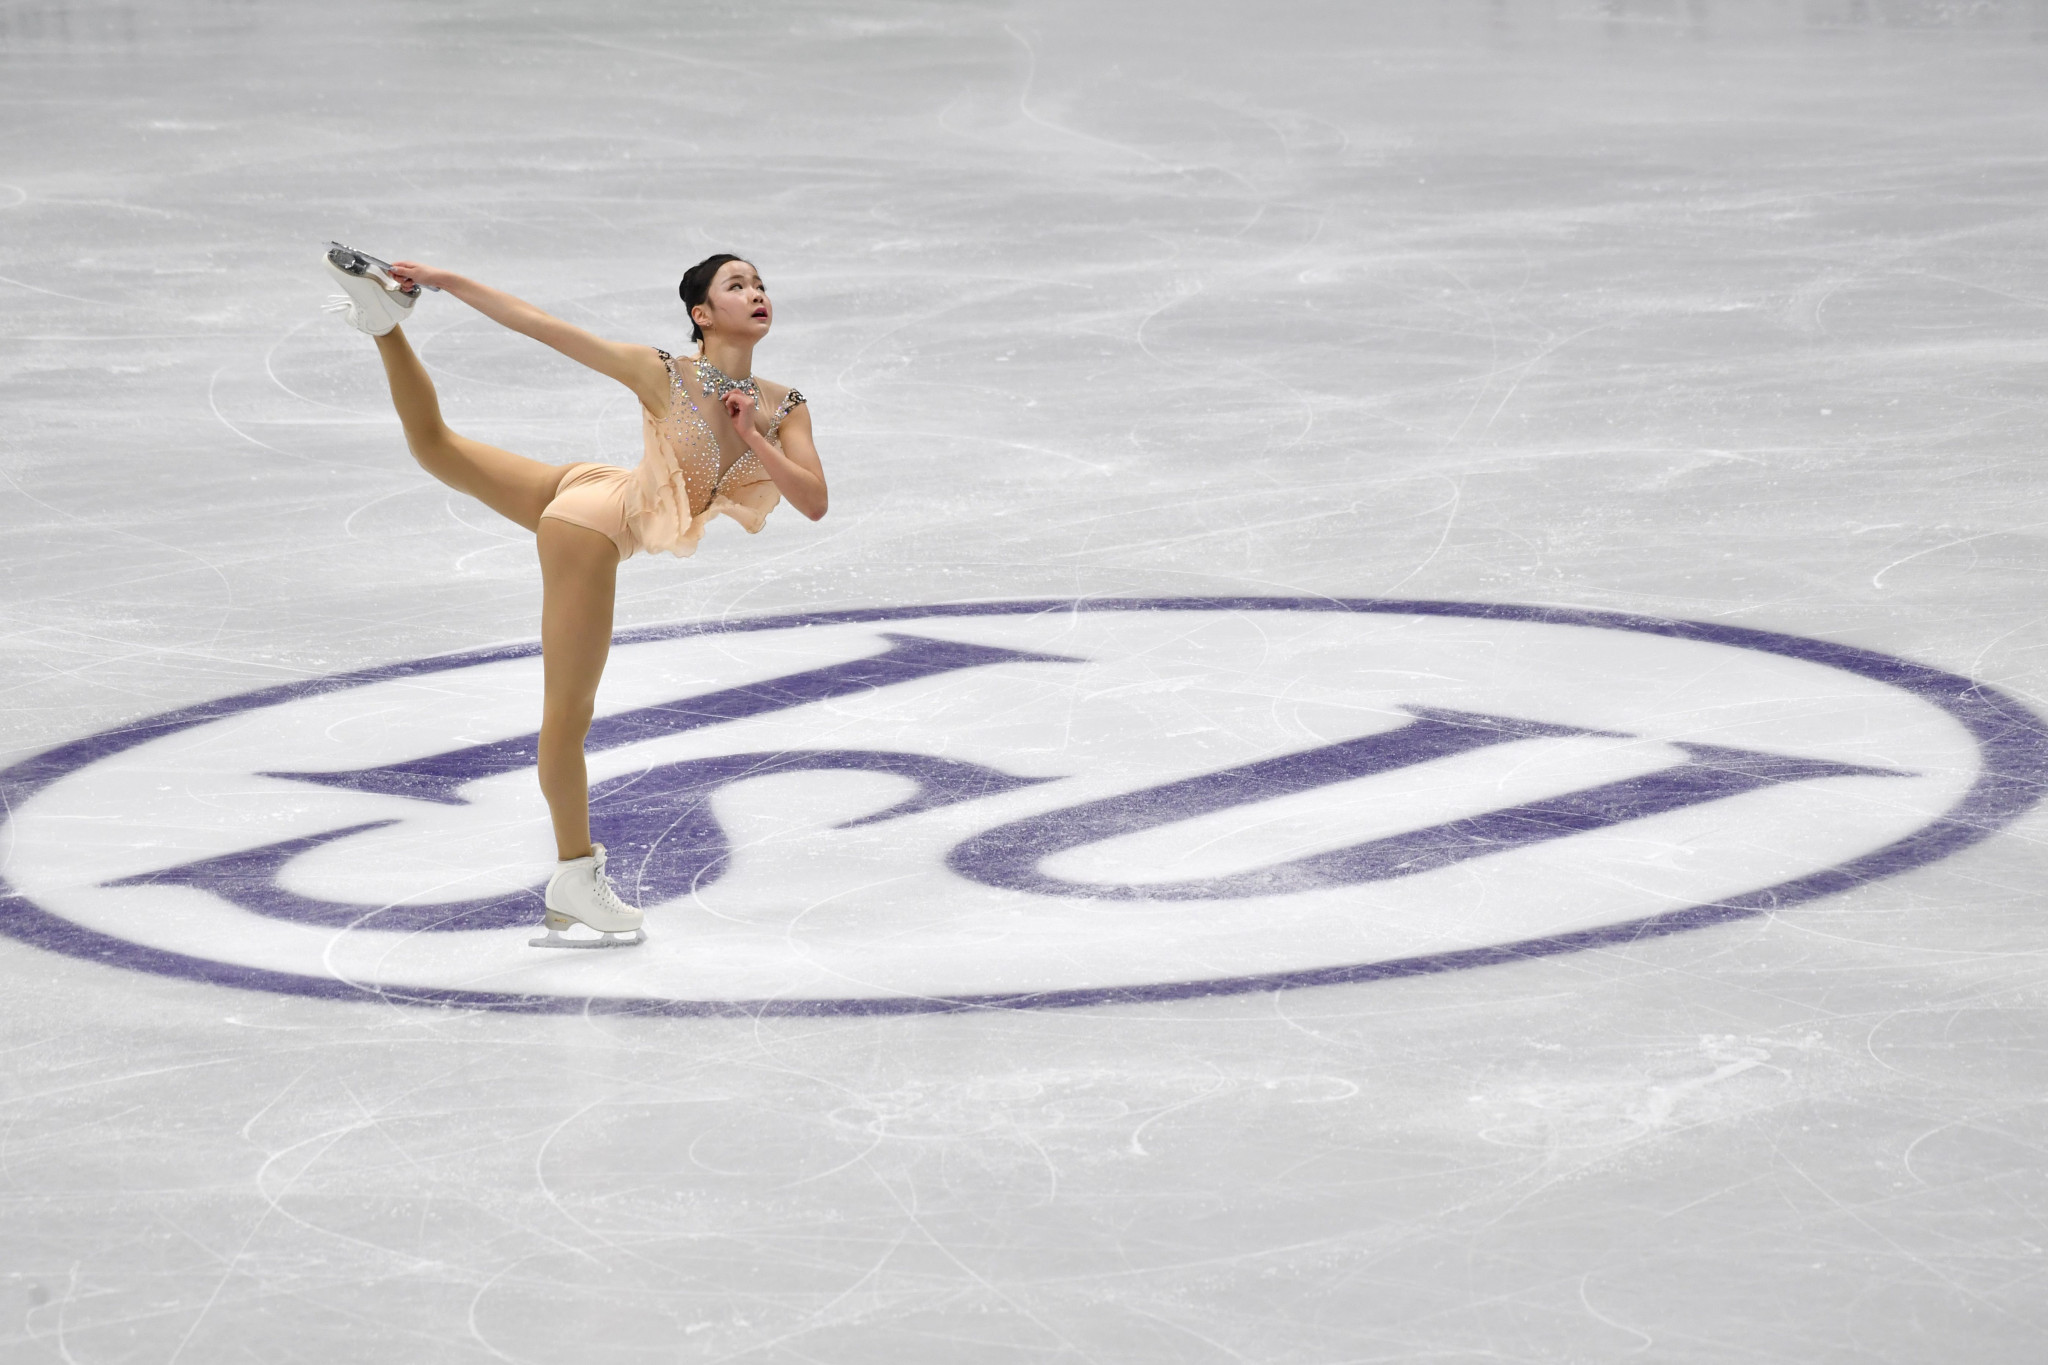 ISU had updated the scale of values of elements in May, but this has now been suspended ©Getty Images